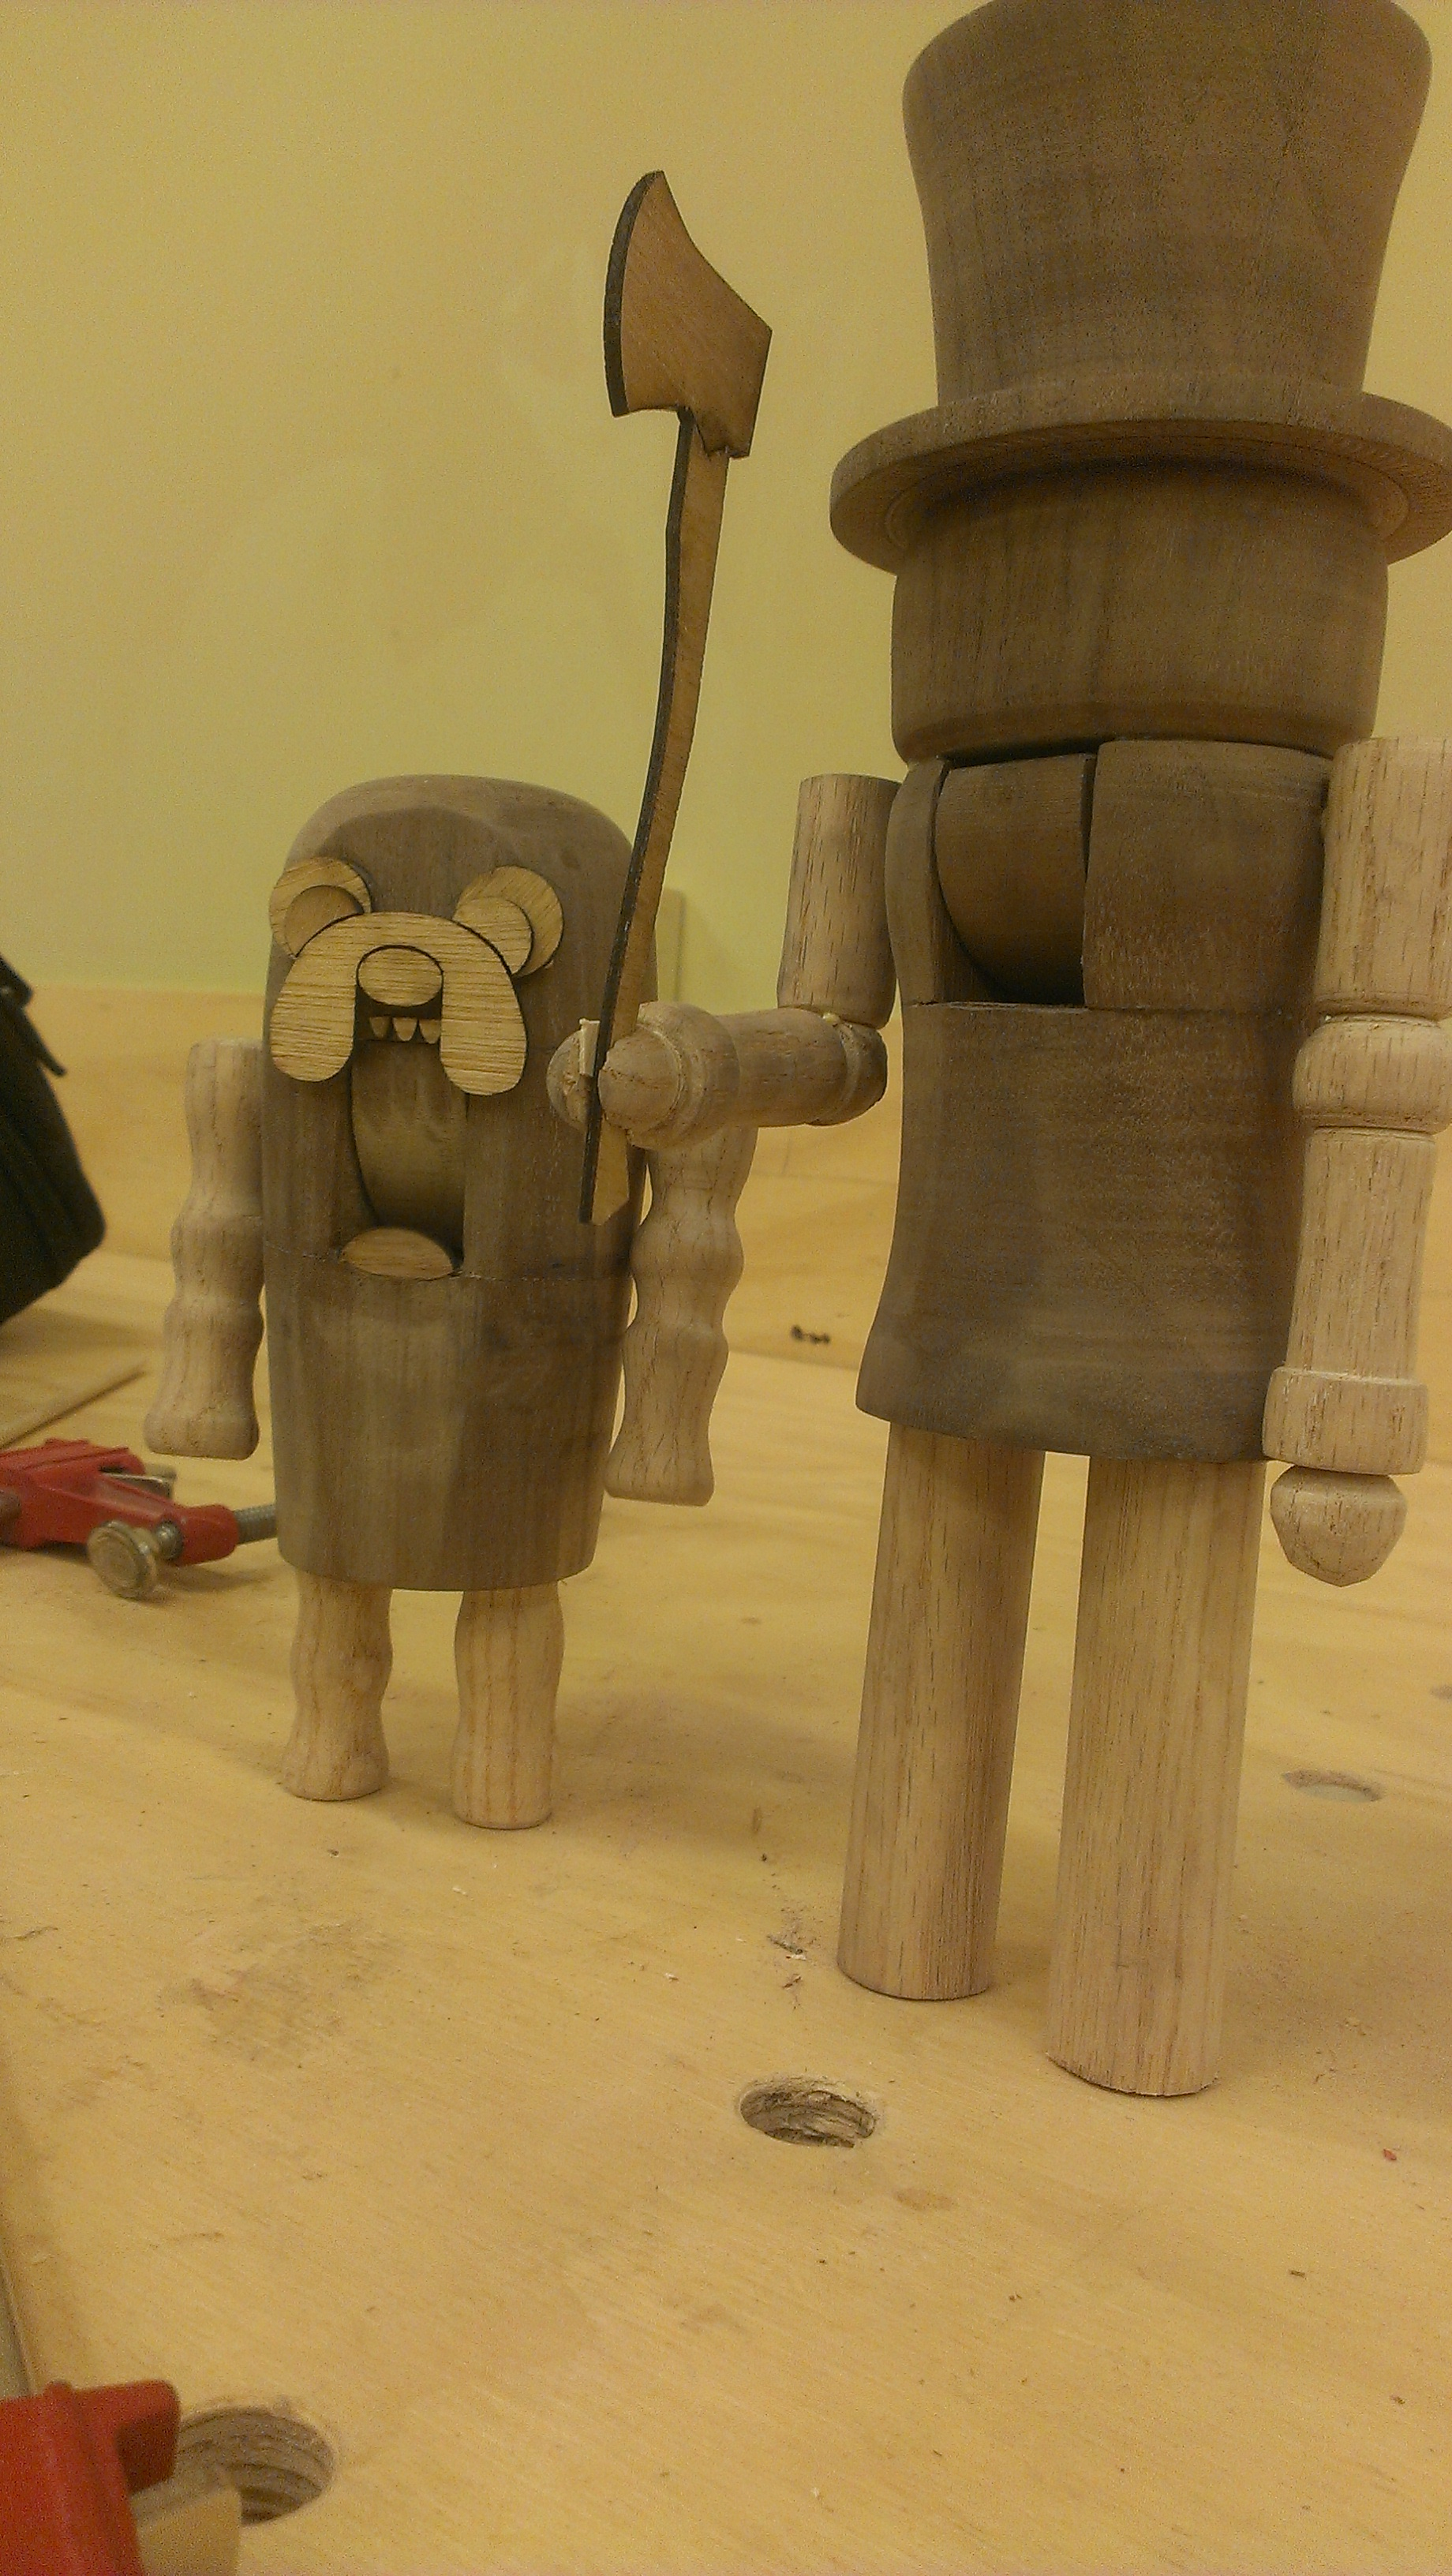 turning wooden nutcrackers from blanks: 5 steps (with pictures)